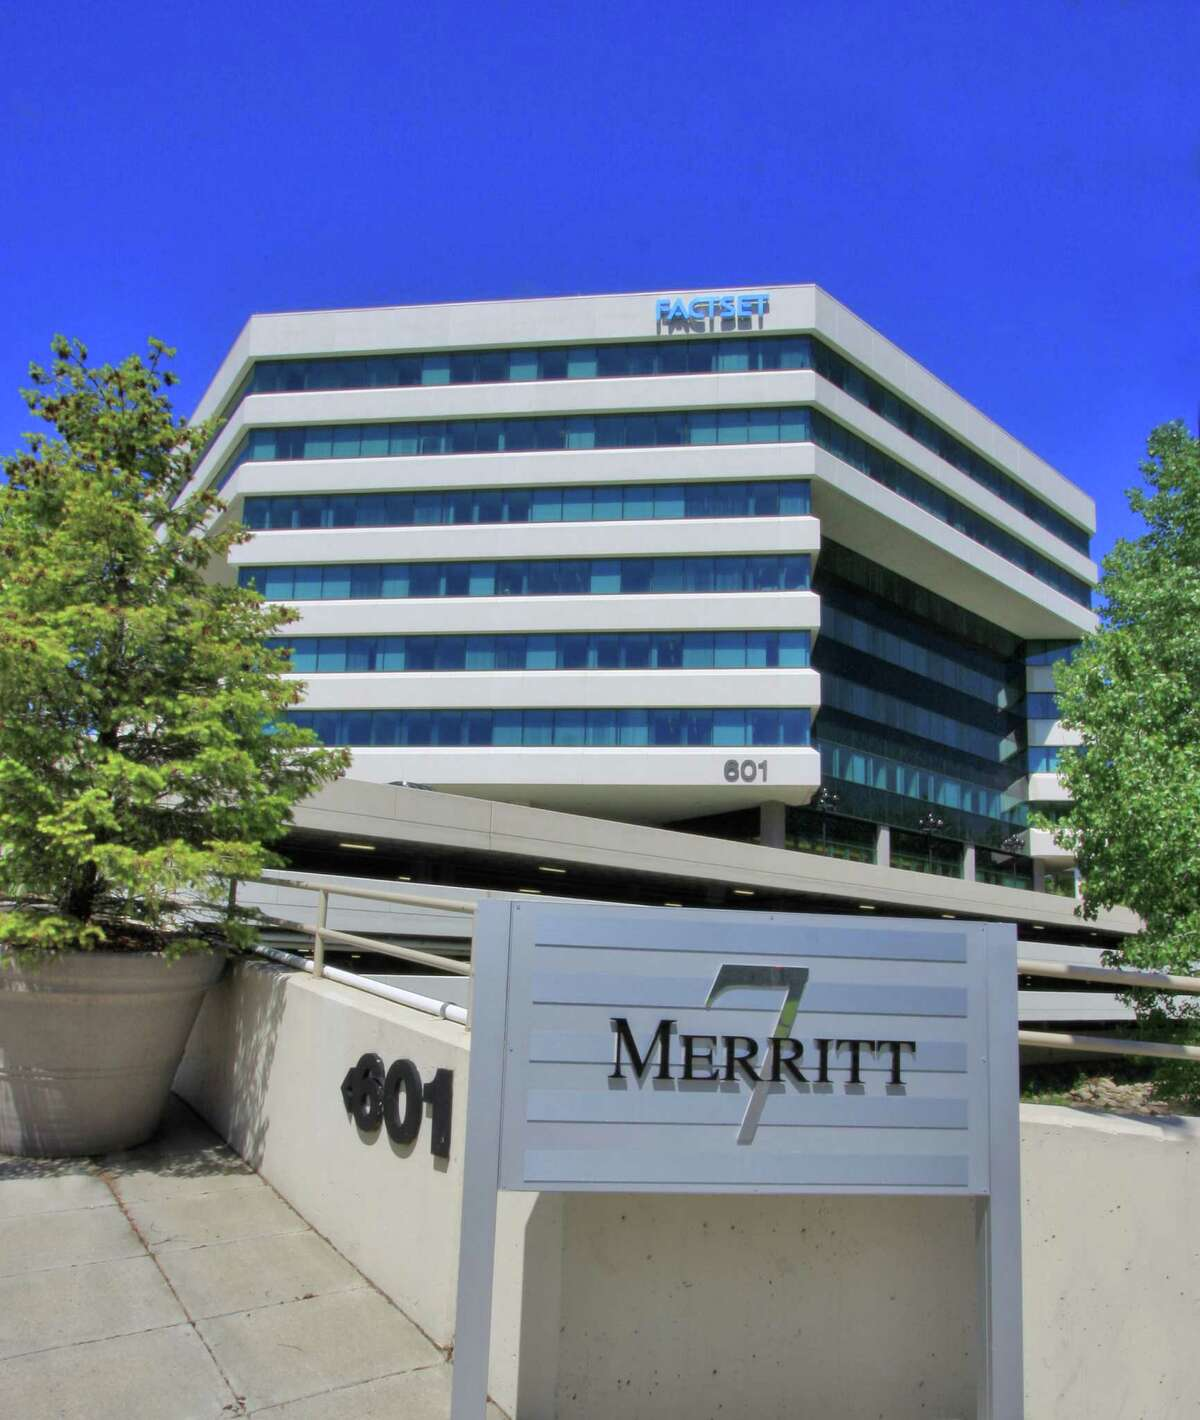 FactSet, which has its headquarters at Merritt 7 in Norwalk, has seen the benefits of extensive energy improvements. The complex, which contains more than 1.4 million square feet of office space, has received Leadership in Environmental and Energy Design recognition by the U.S. Green Building Council and the Environmental Protection Agency's Energy Star program.